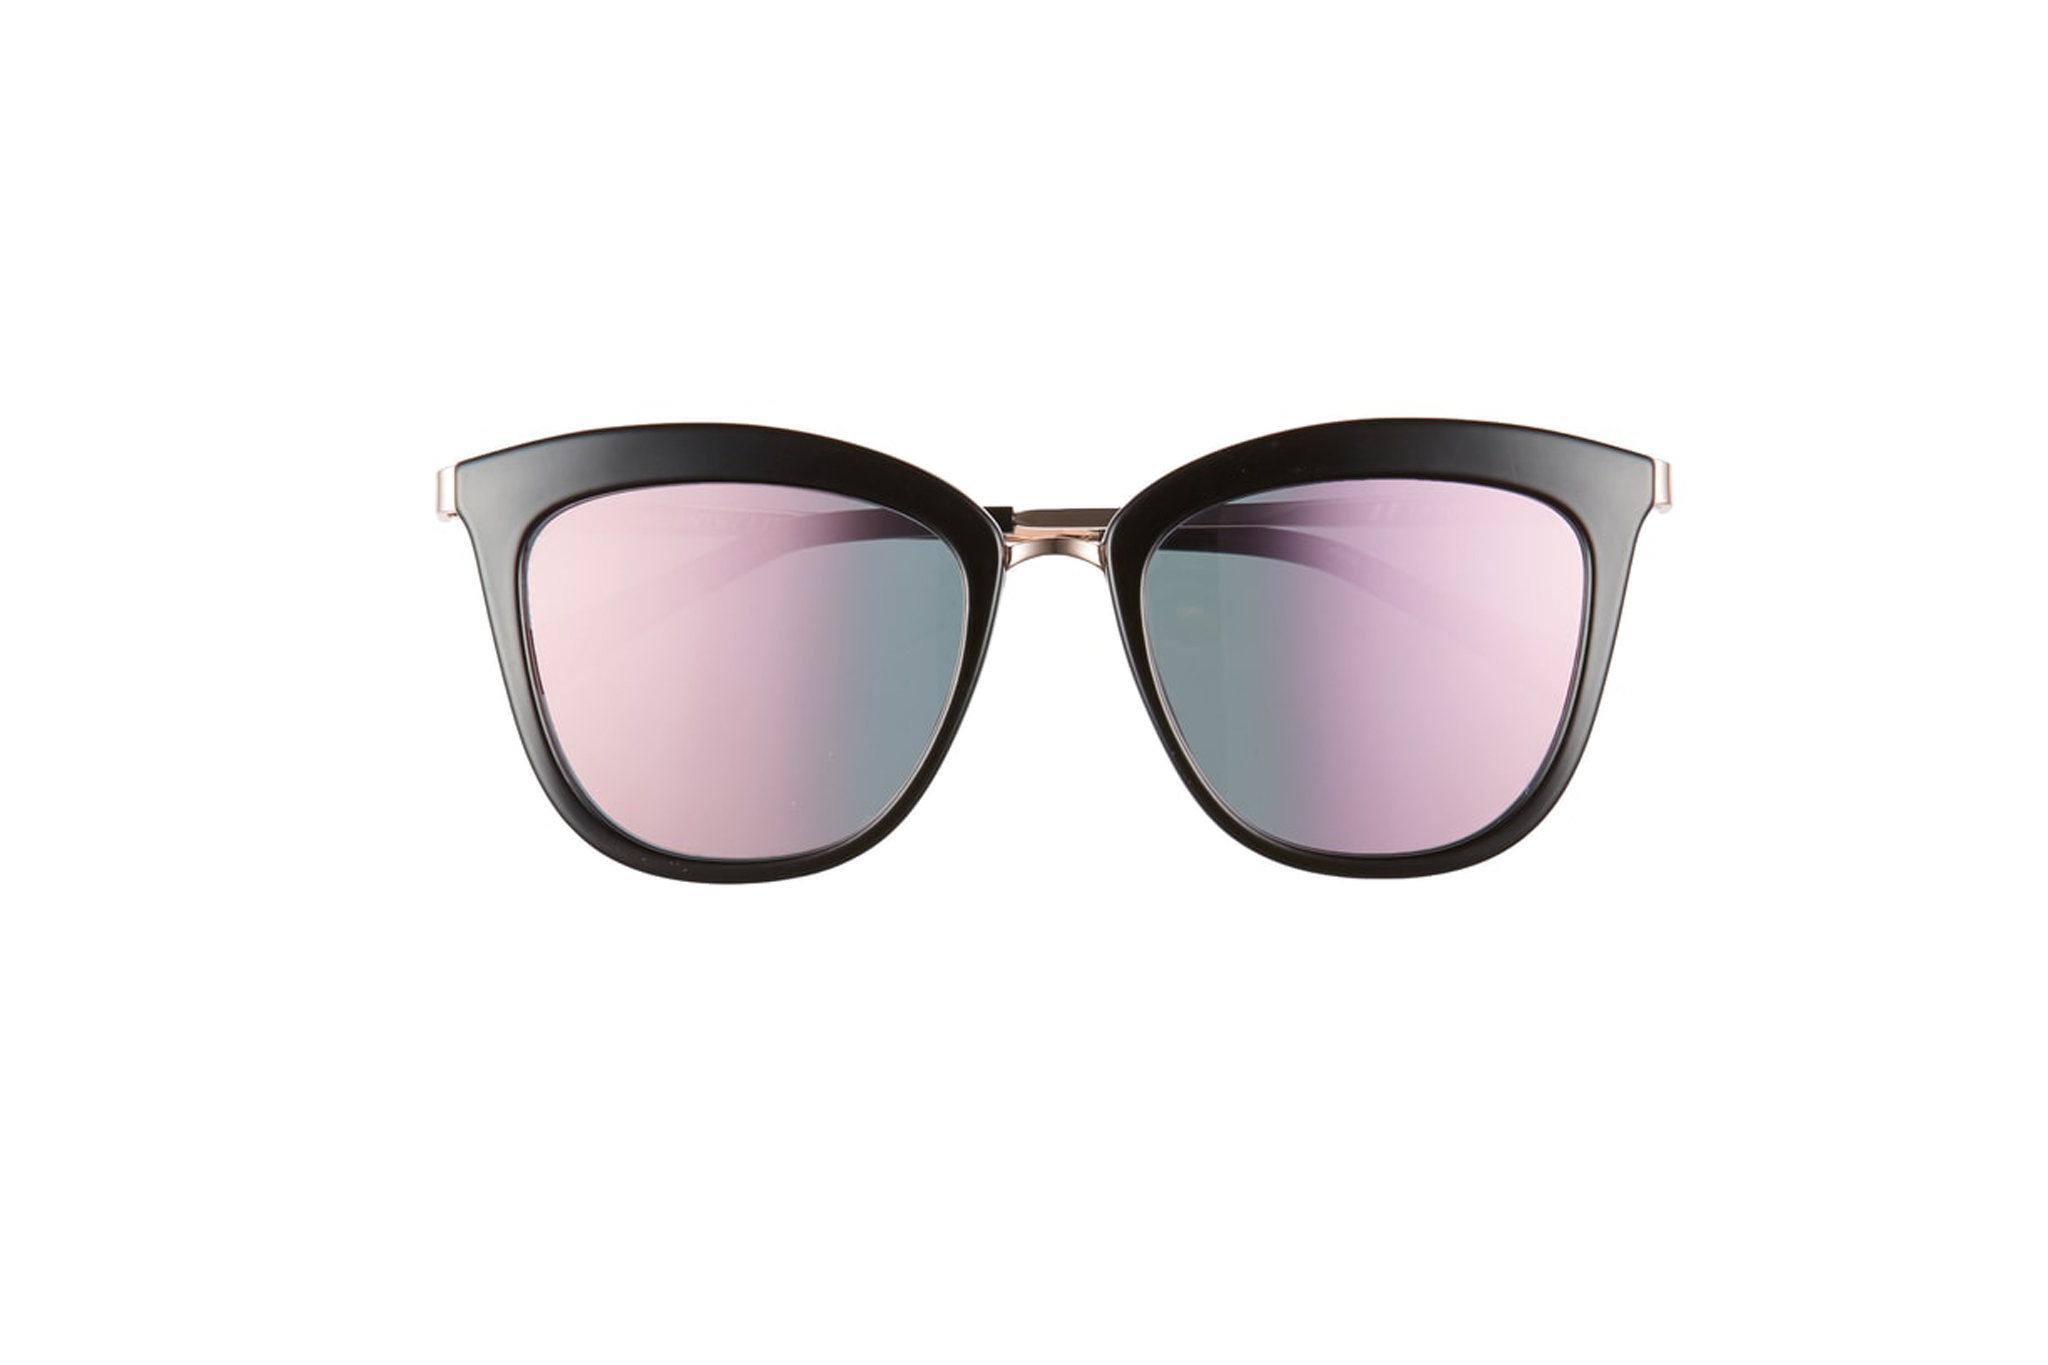 Le Specs Caliente 53mm Cat Eye Sunglasses